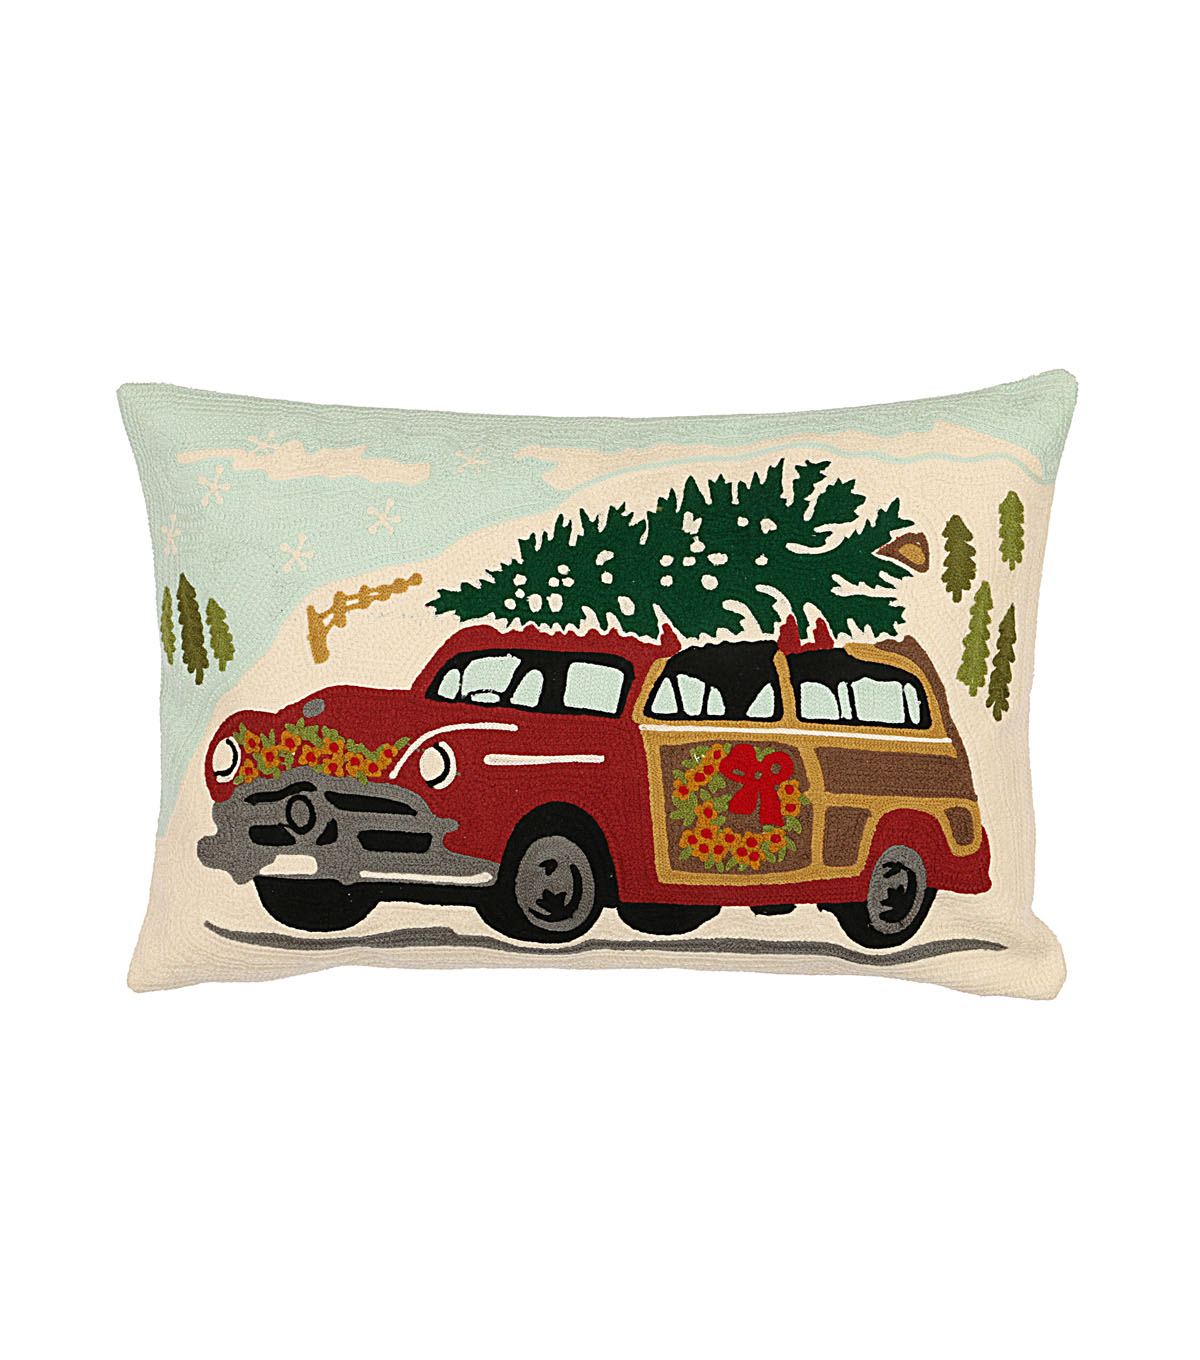 3R Studios Christmas 14\u0027\u0027x22\u0027\u0027 Embroidered Cotton Pillow-Car Image